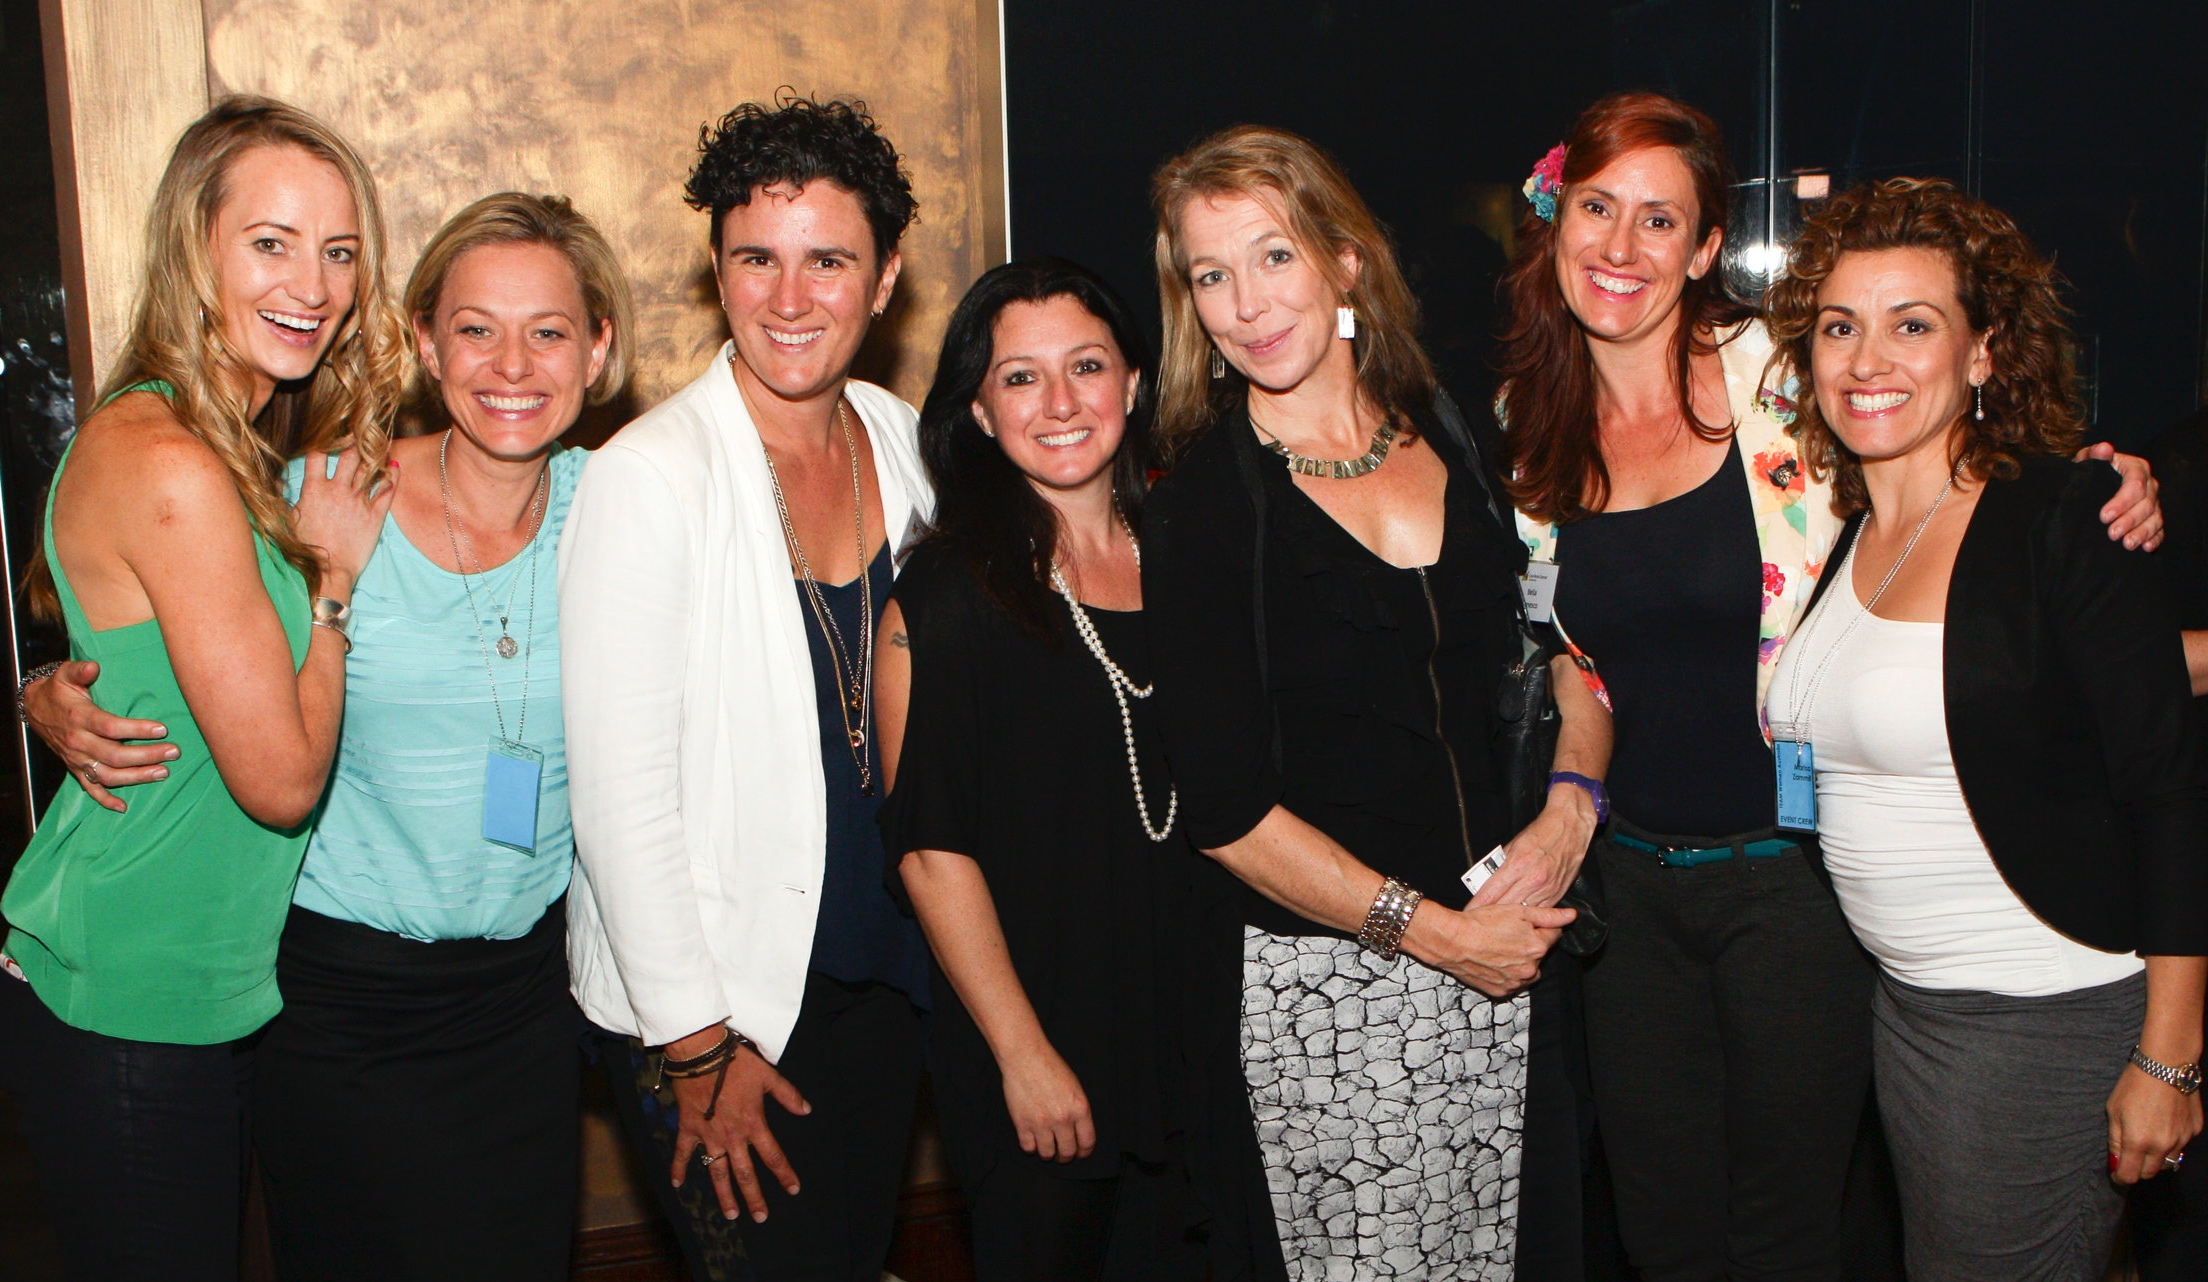 TED-Style Storytellers (left to right): Mindy Woods, Kylee Fitzpatrick, Abbie Widdin, Nicole Monterforte, Camilla Cooke, Bella Zanesca and Marisa Zammit.